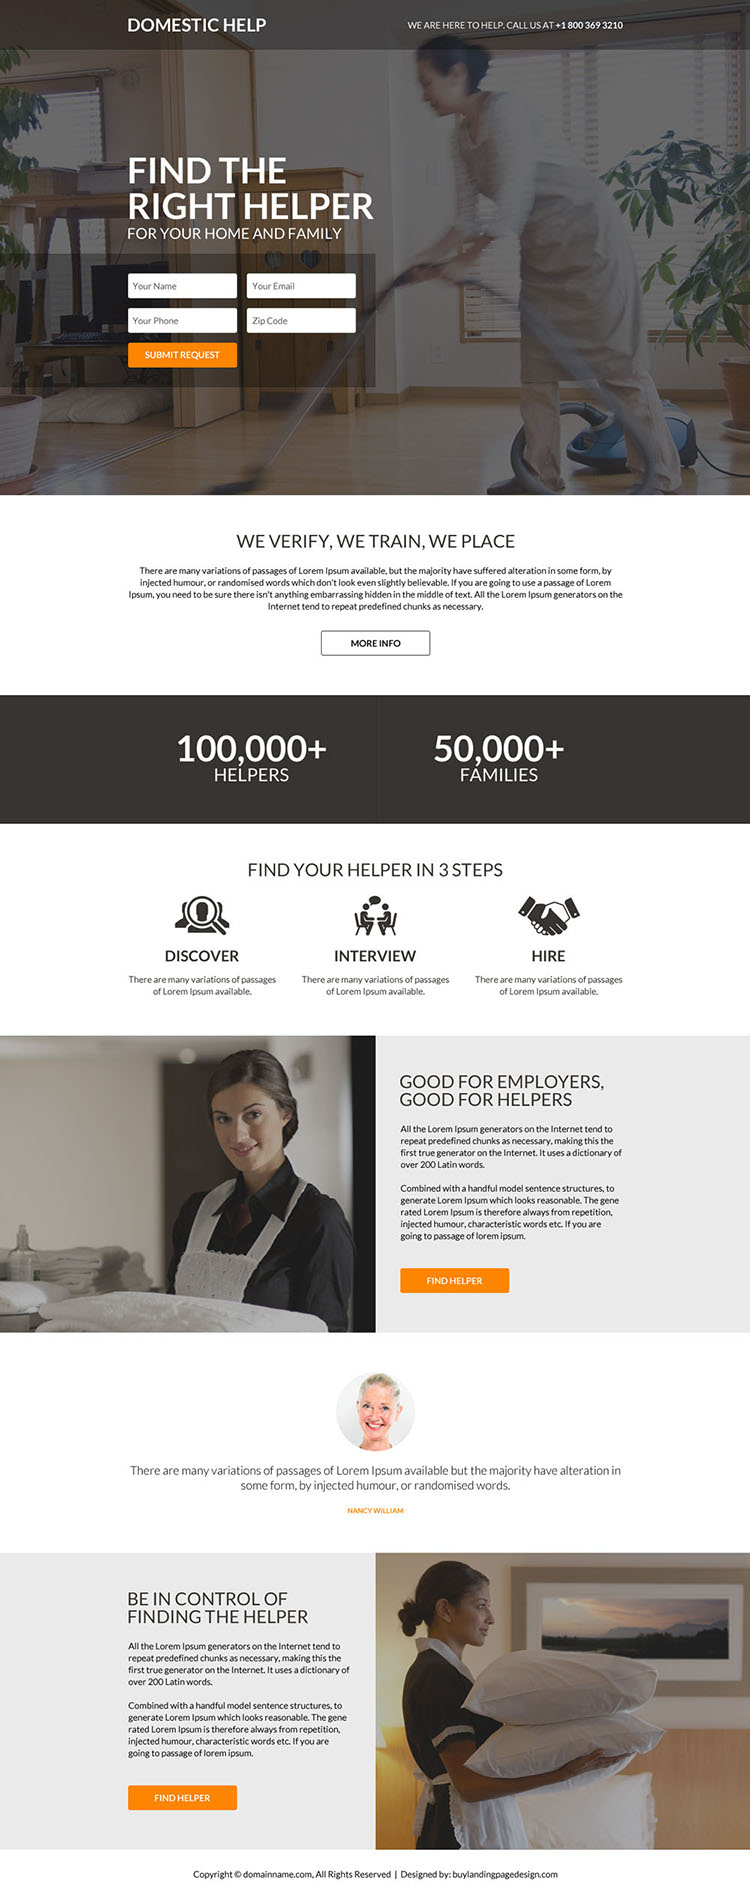 professional domestic helper lead generating landing page design